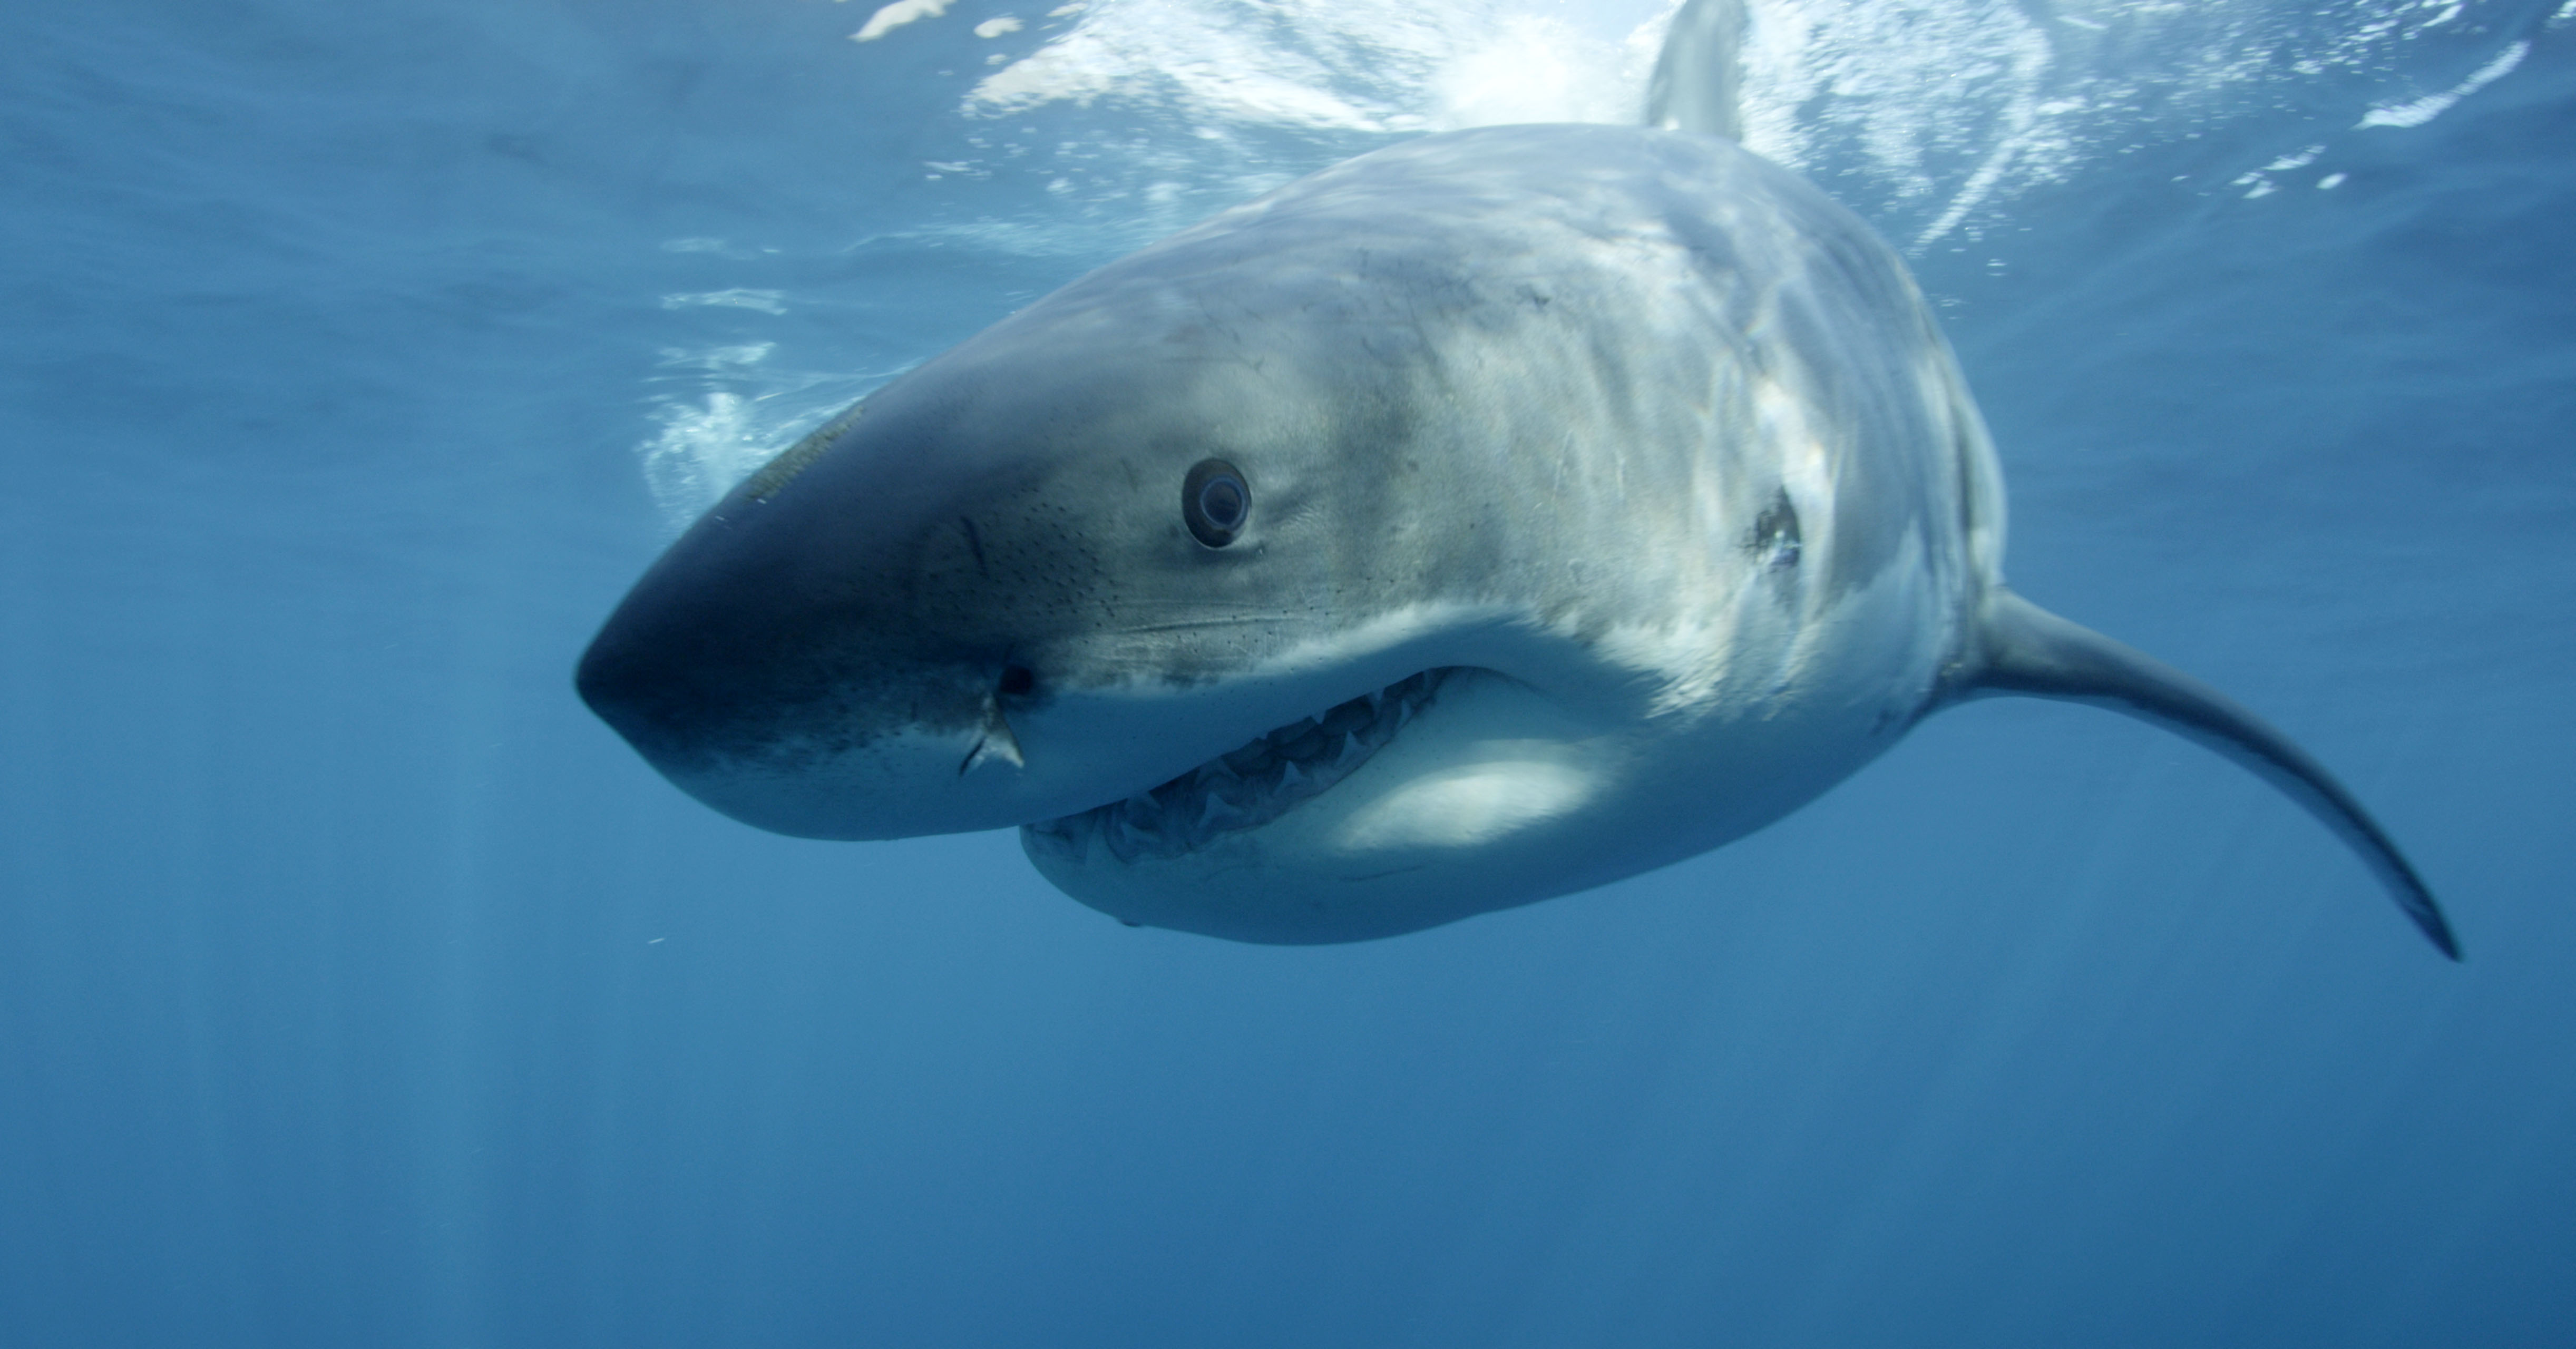 Swimmer Killed By Shark While Diving Off Australian Coast